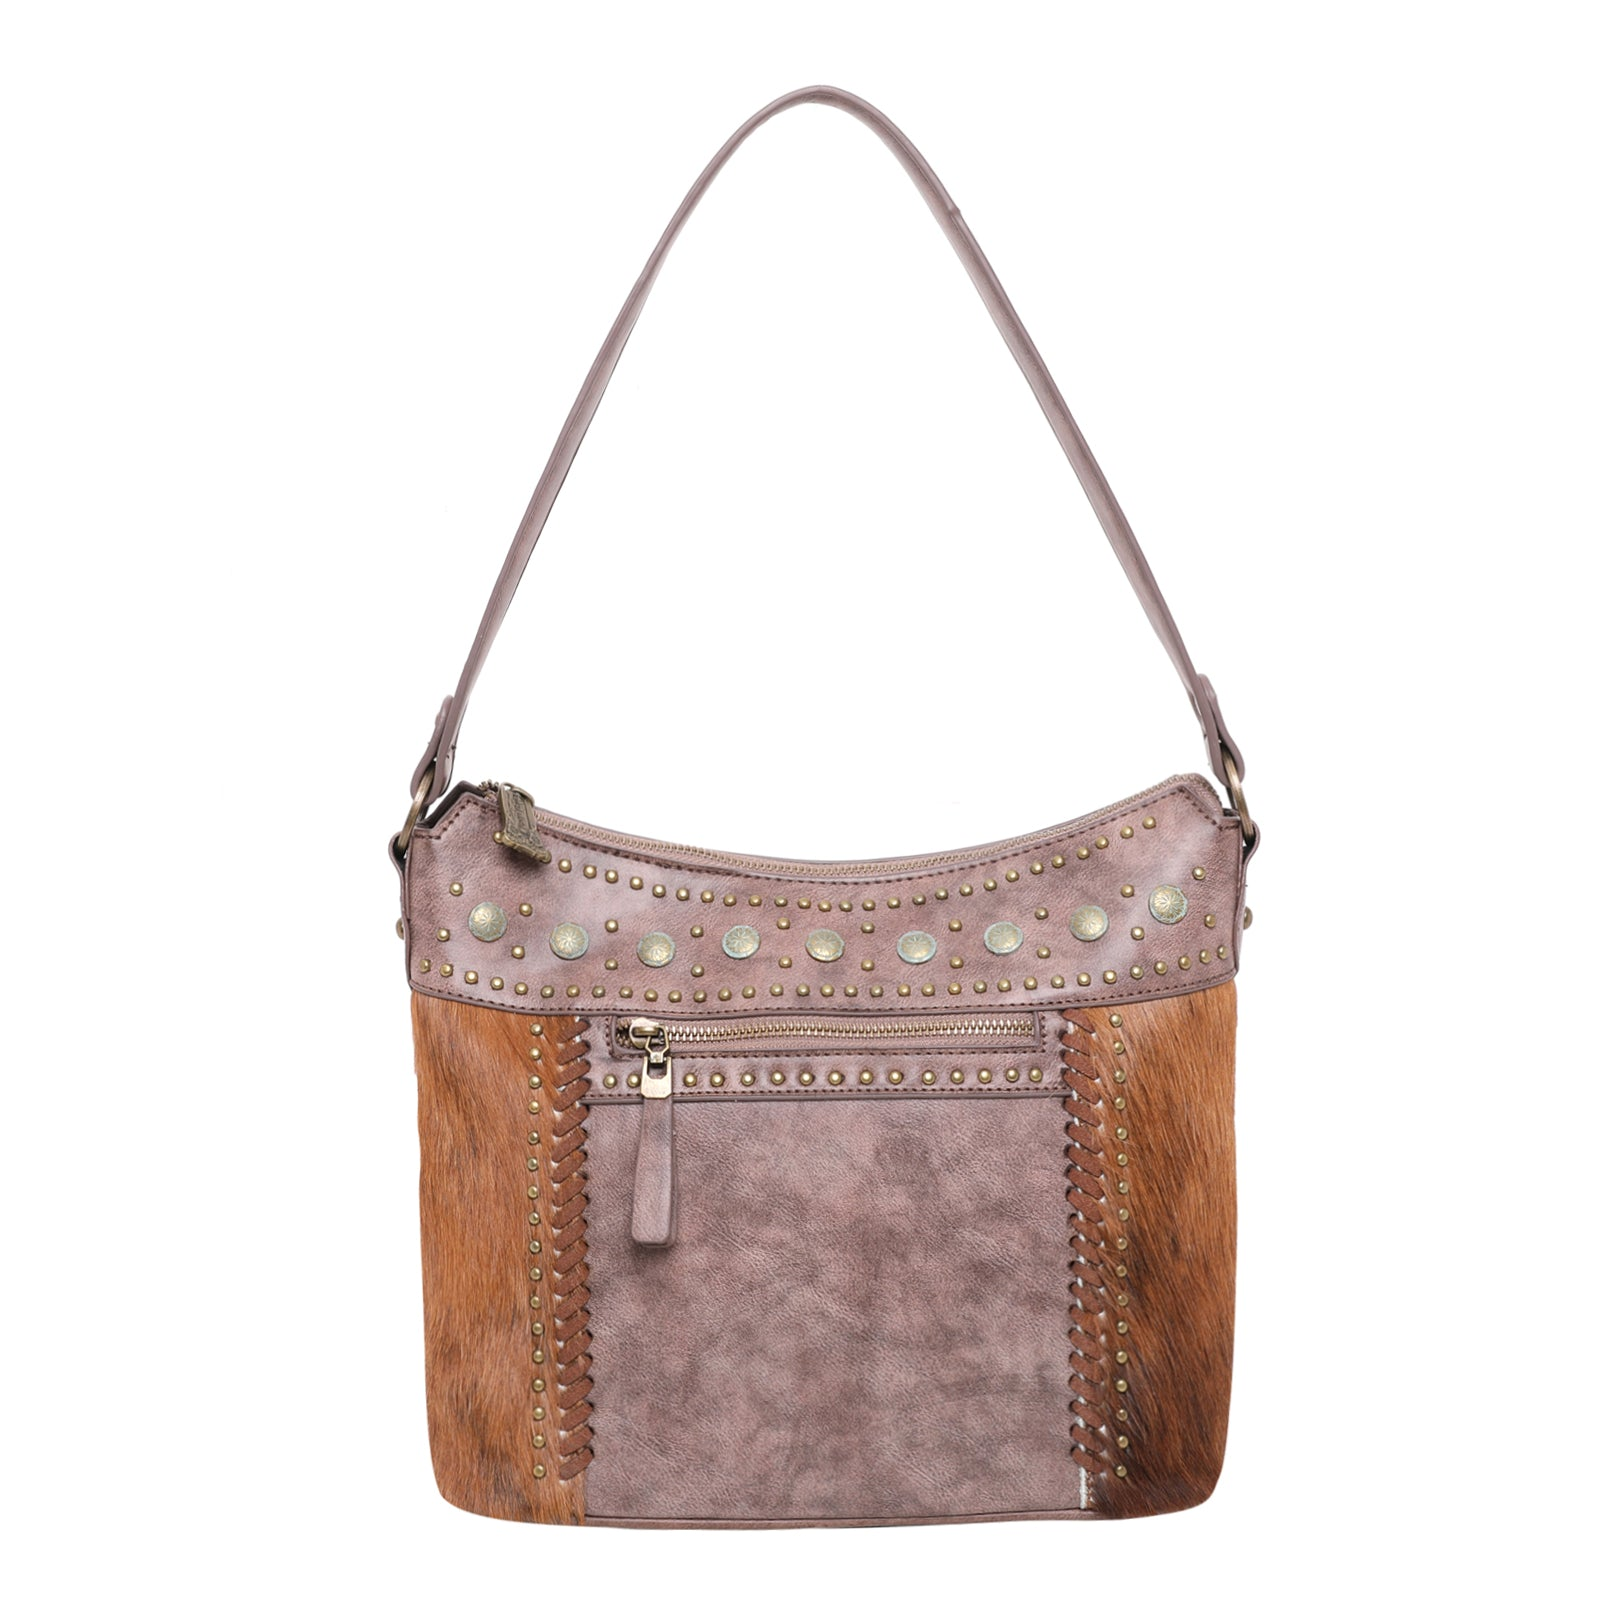 Brass Cowhide Concealed Carry Bag